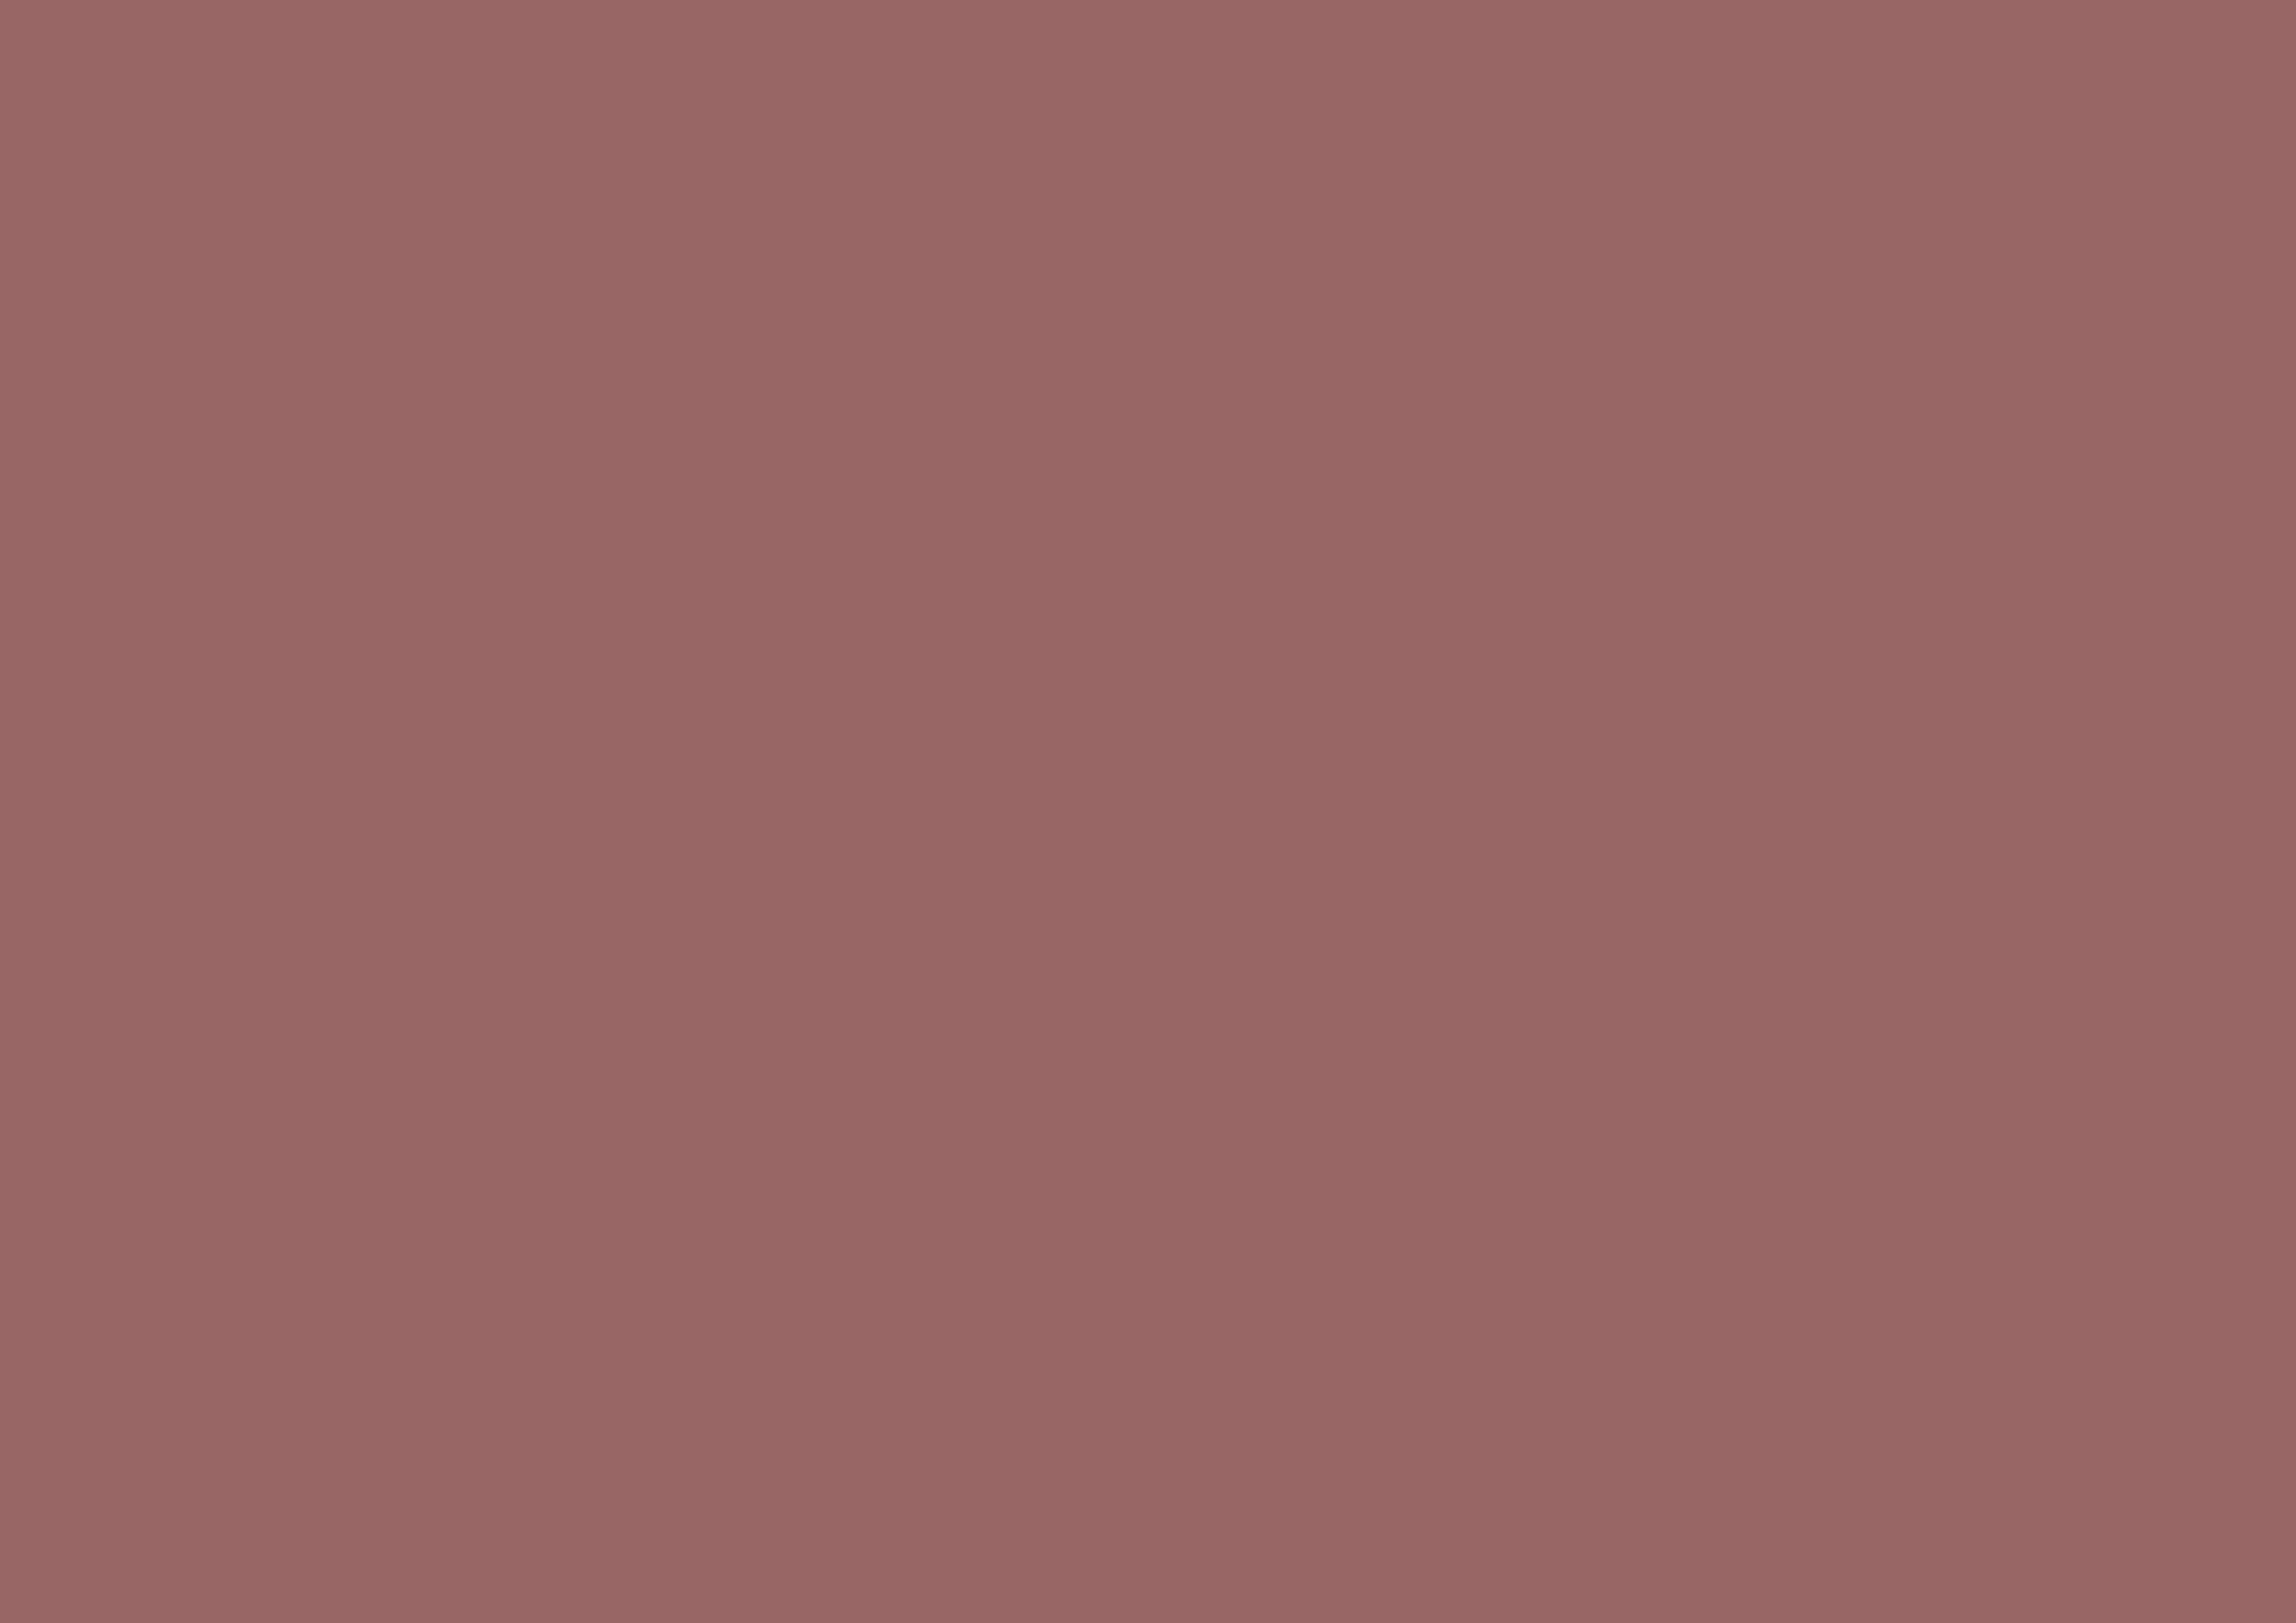 3508x2480 Copper Rose Solid Color Background